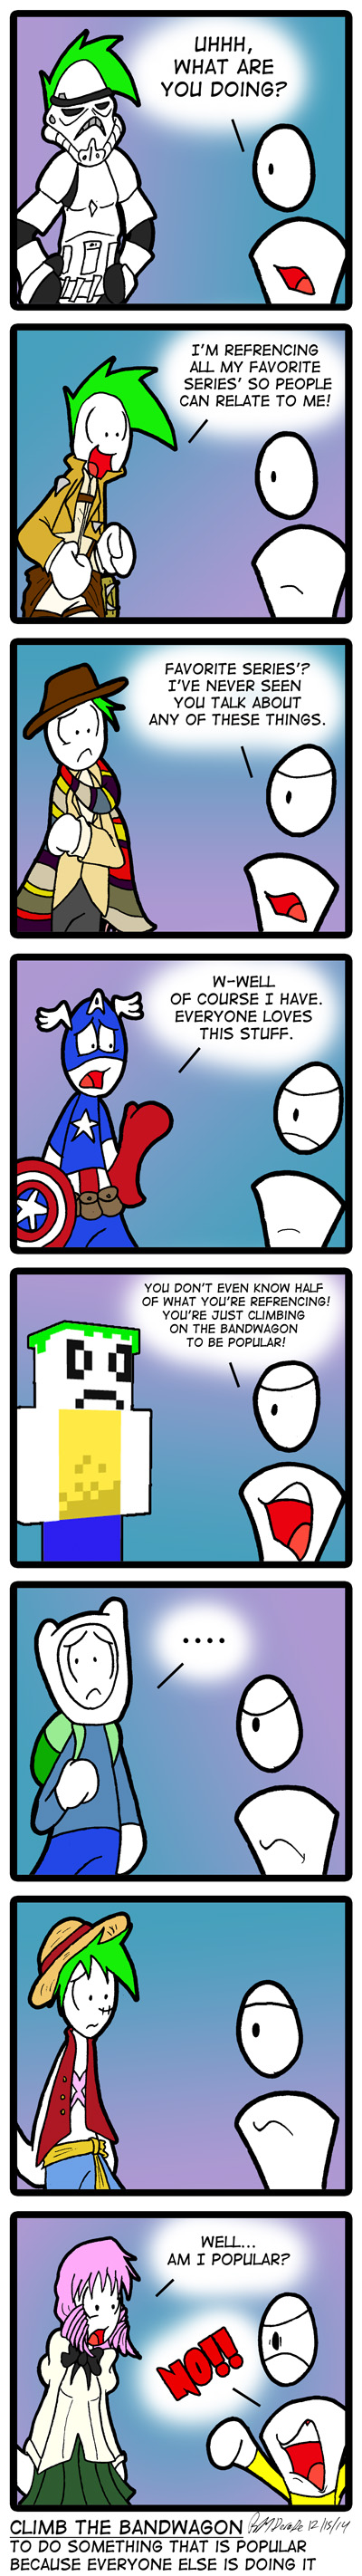 This comic is going to be so dated in ten years.